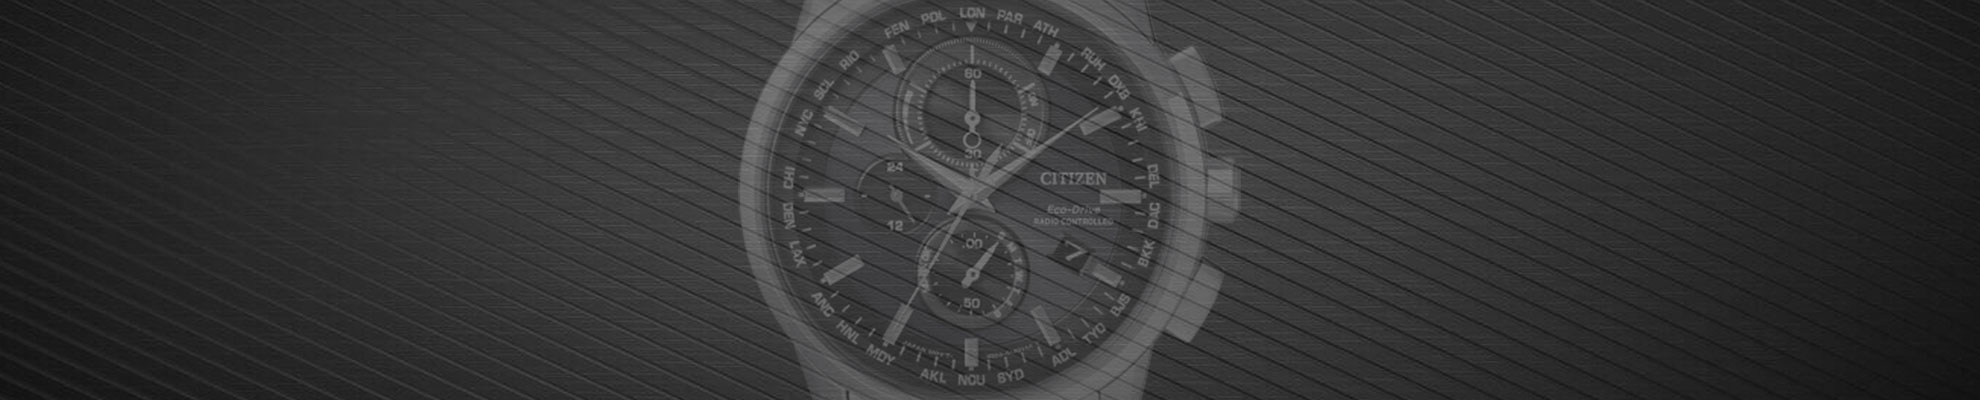 citizen radiocontrollato eco drive